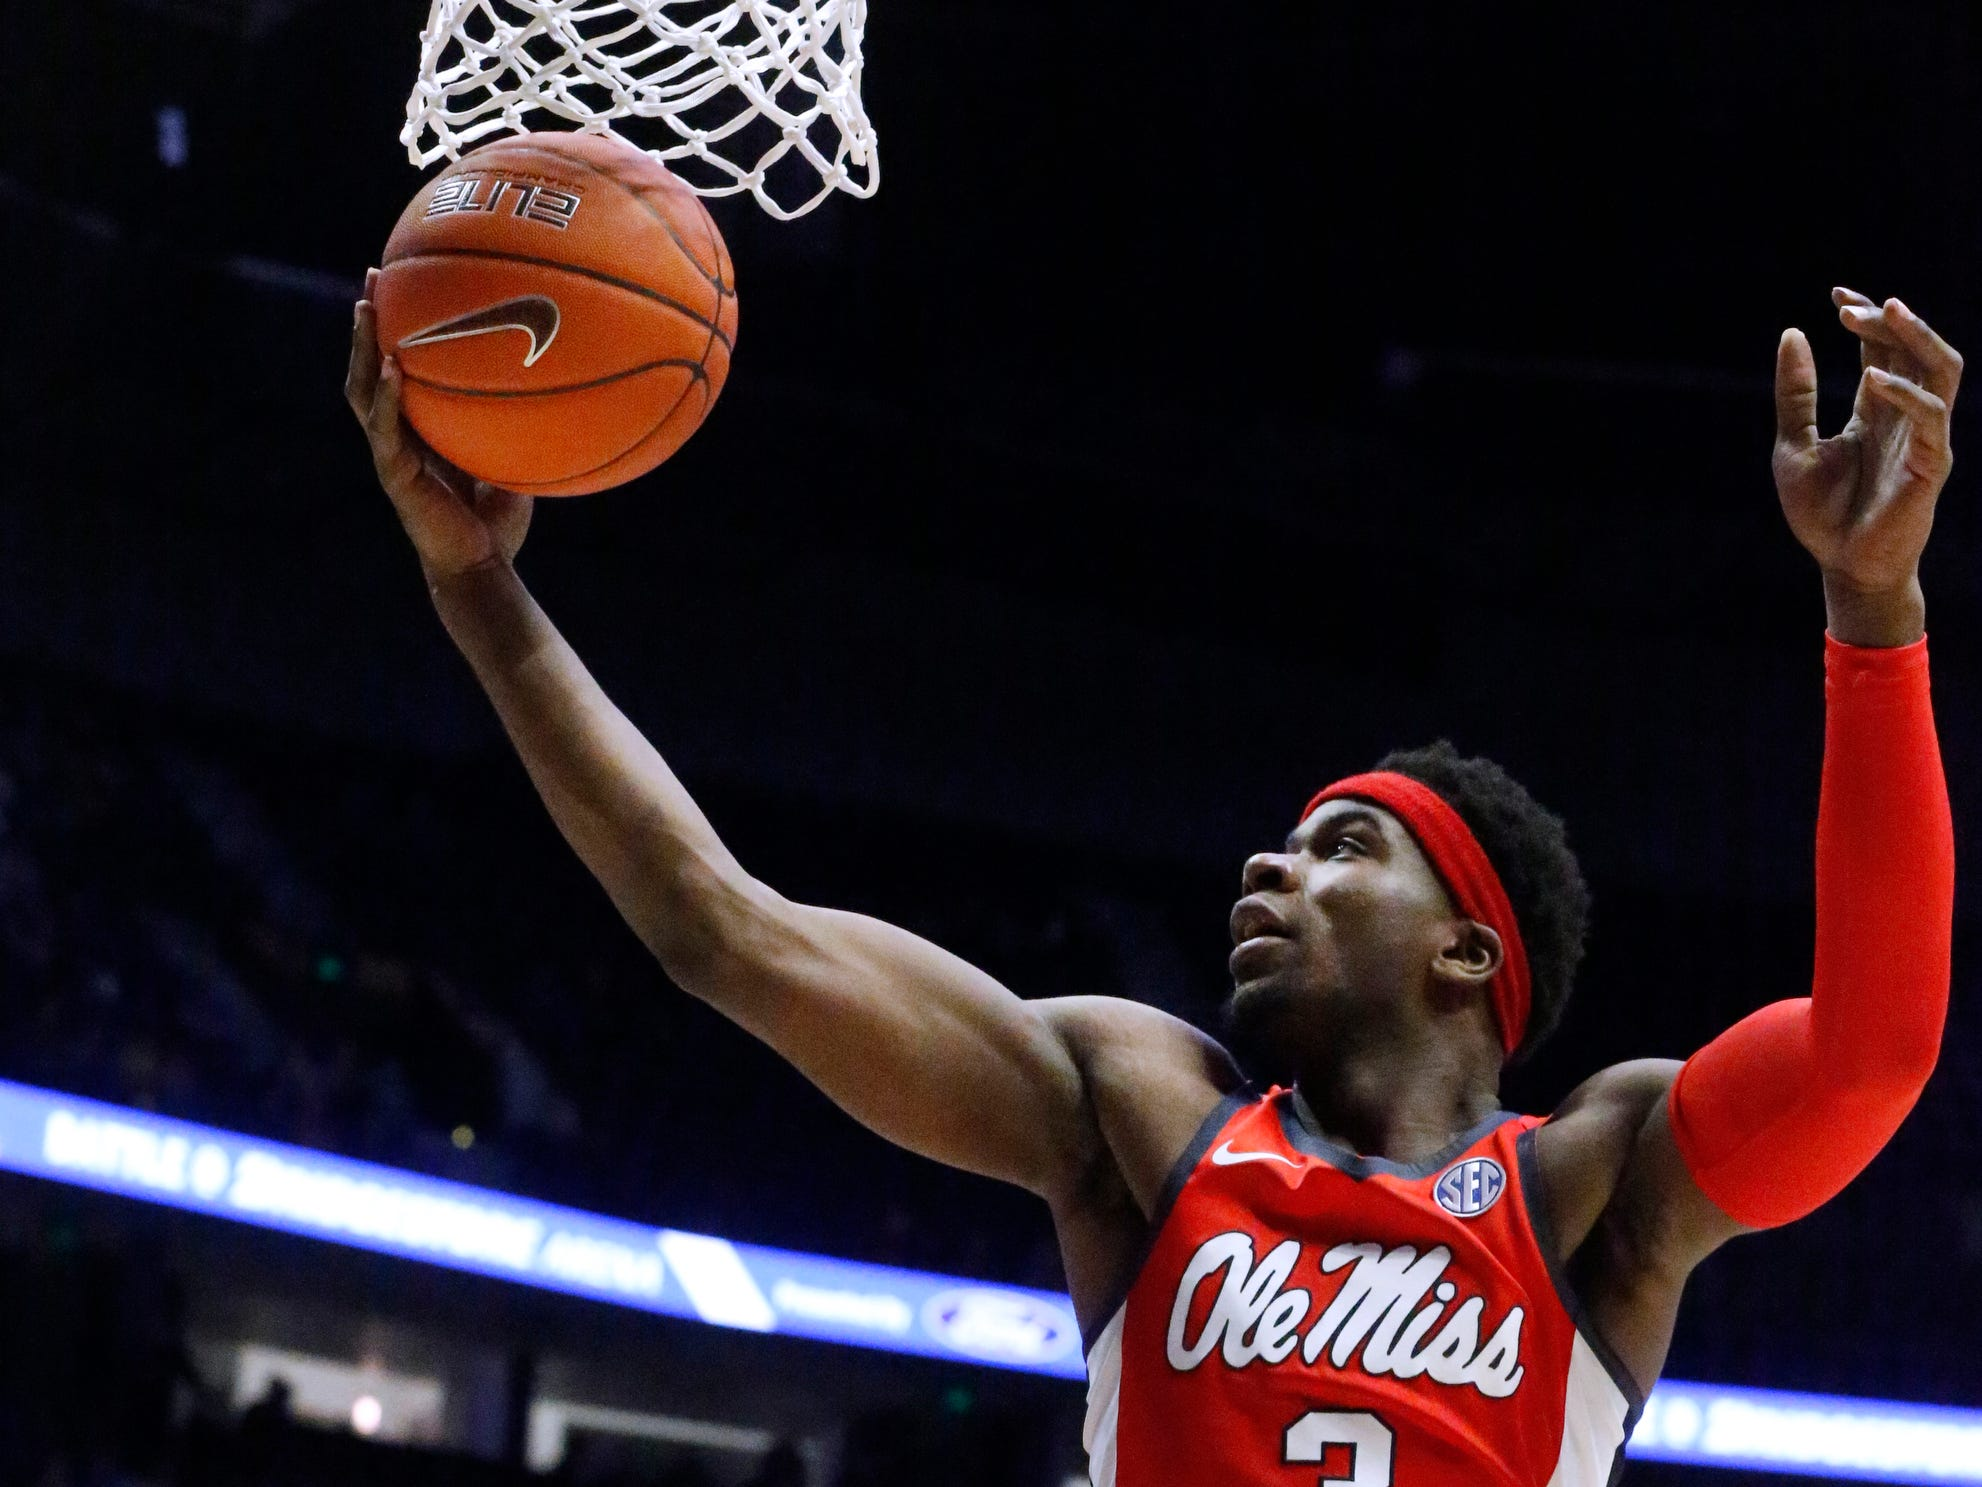 Ole Miss' guard Terence Davis (3) grabs a rebound during the game against MTSU on Friday Dec. 21, 2018, at Bridgestone Arena.